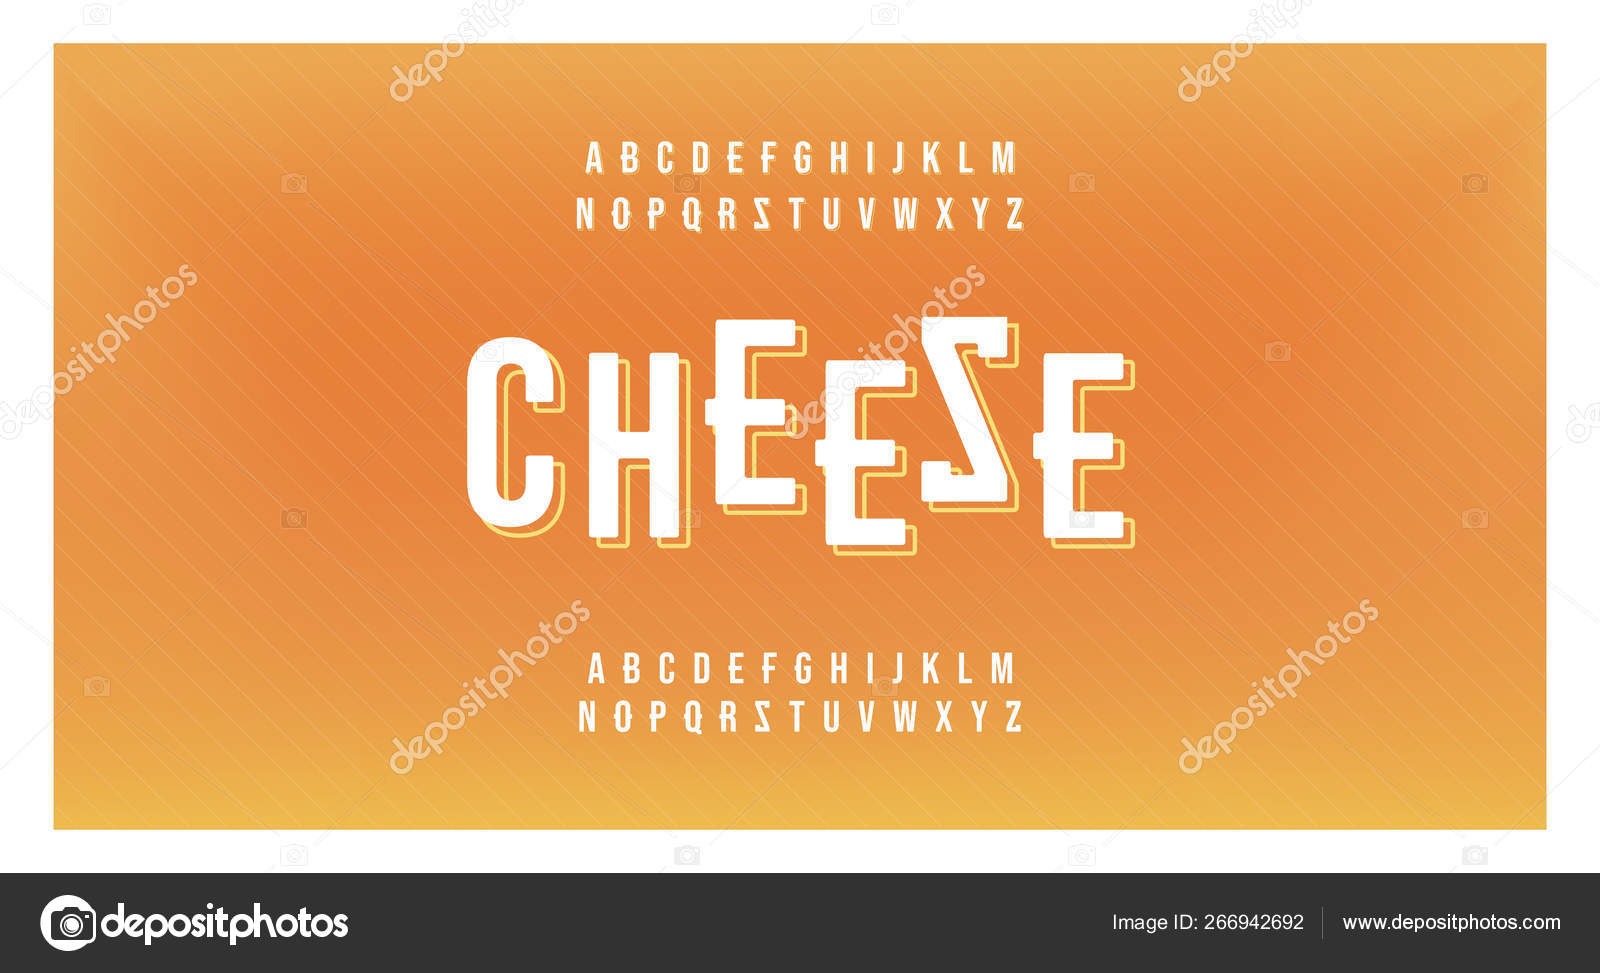 Cheese Minimal Food Font Creative Modern Alphabet Typography